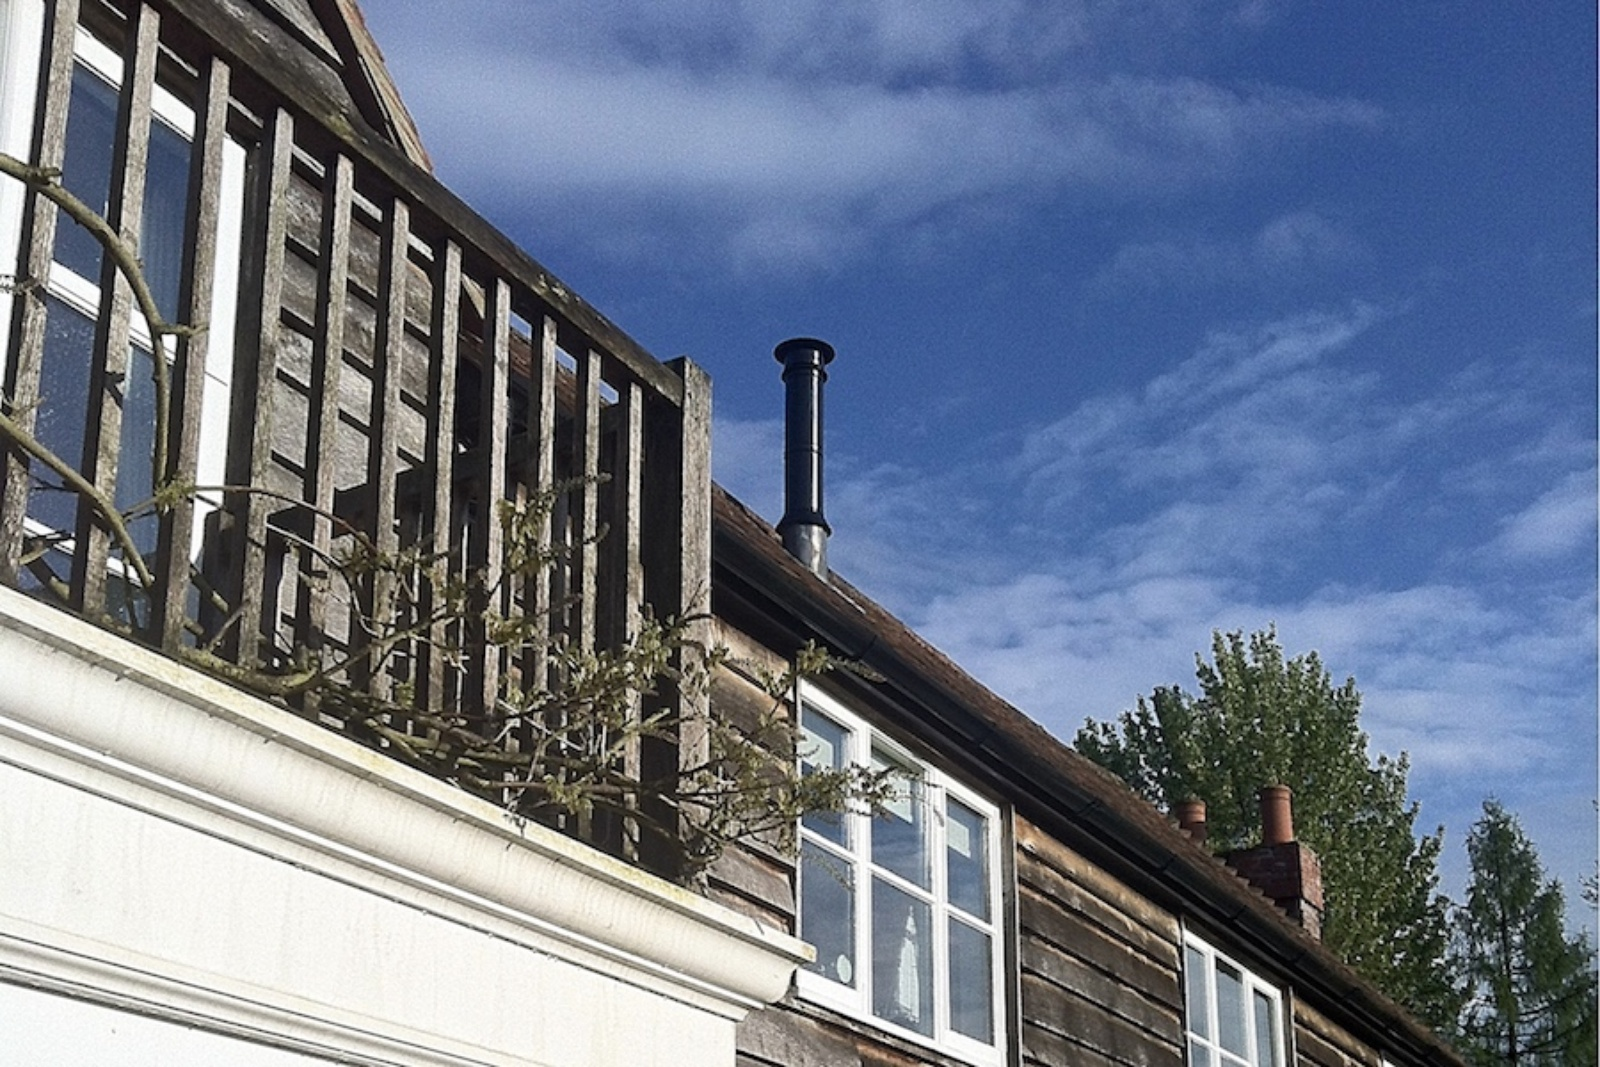 The black twin wall flue was taken up through the roof to provide minimal impact visually from the garden.